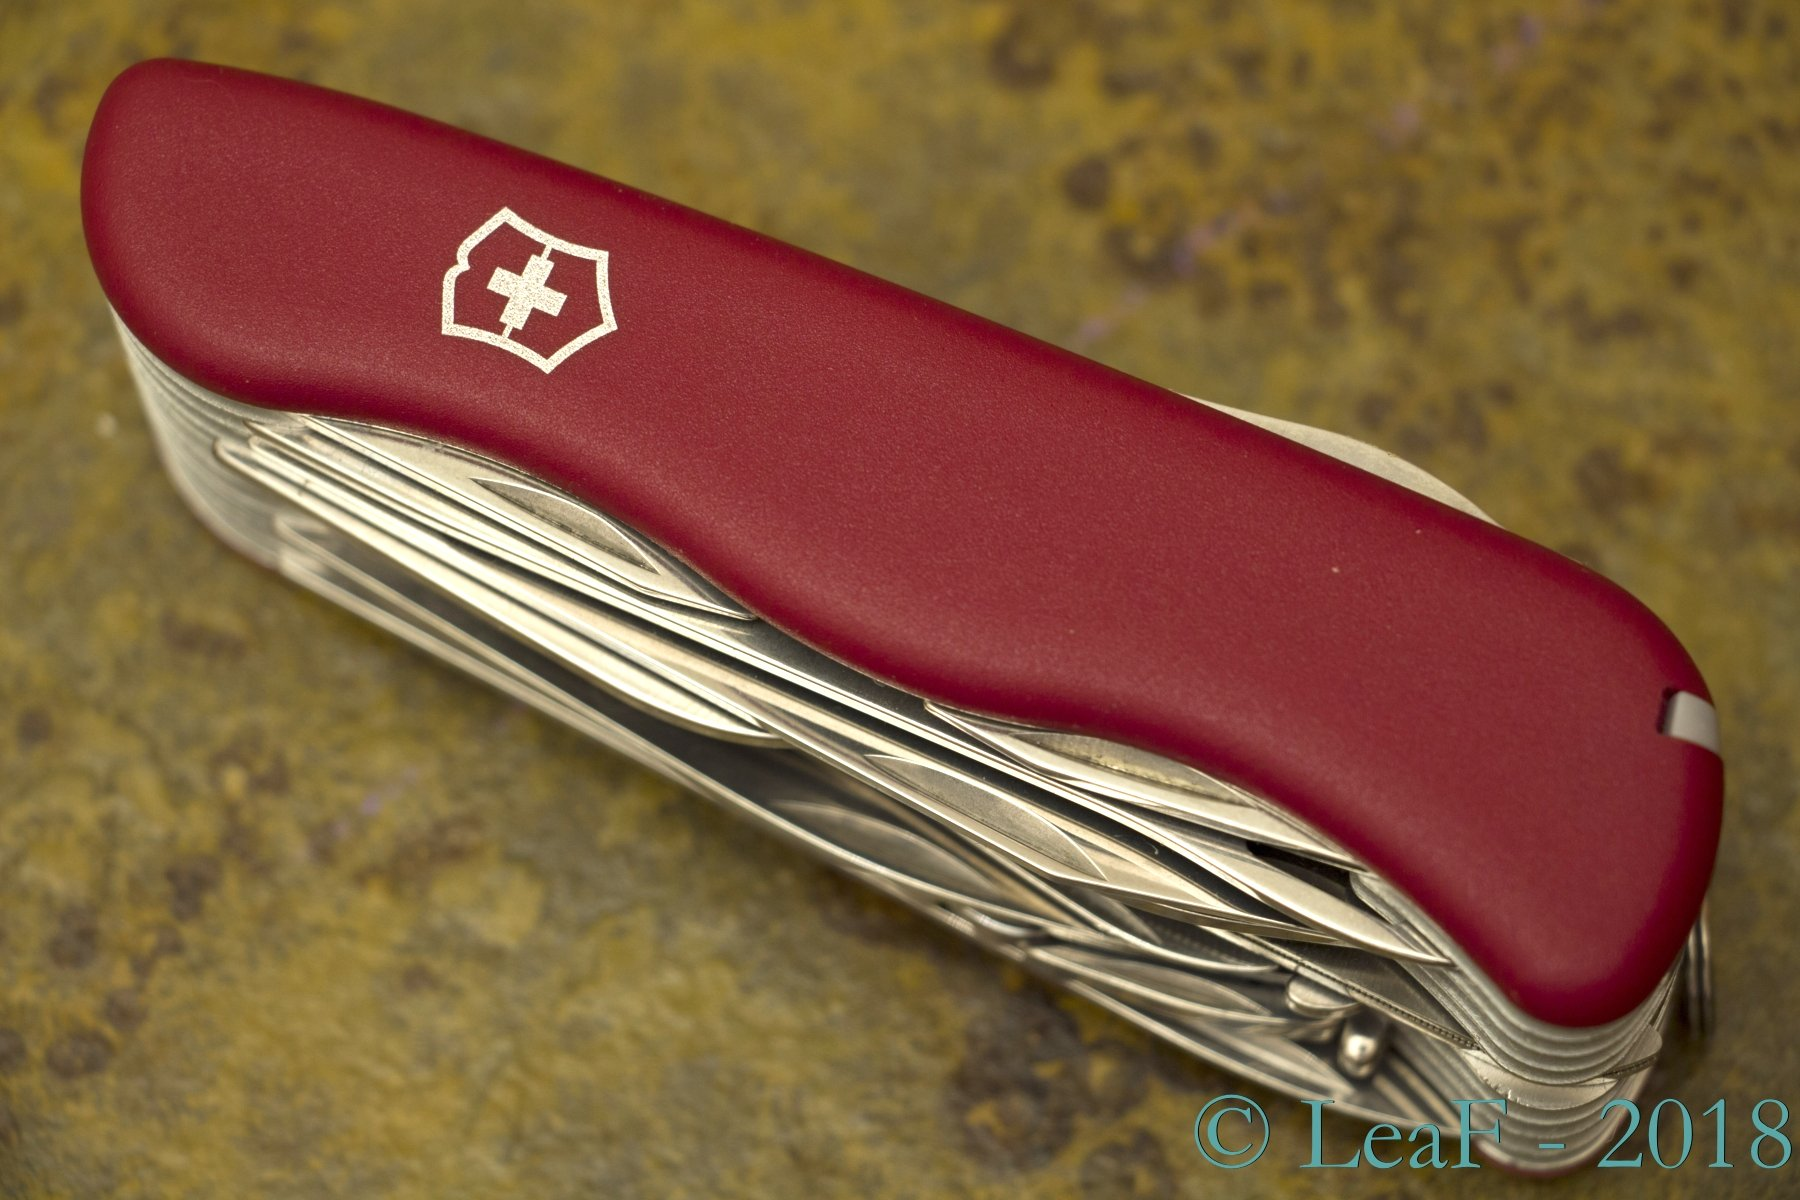 393 Workchamp Xl Leaf S Victorinox Knives Collection